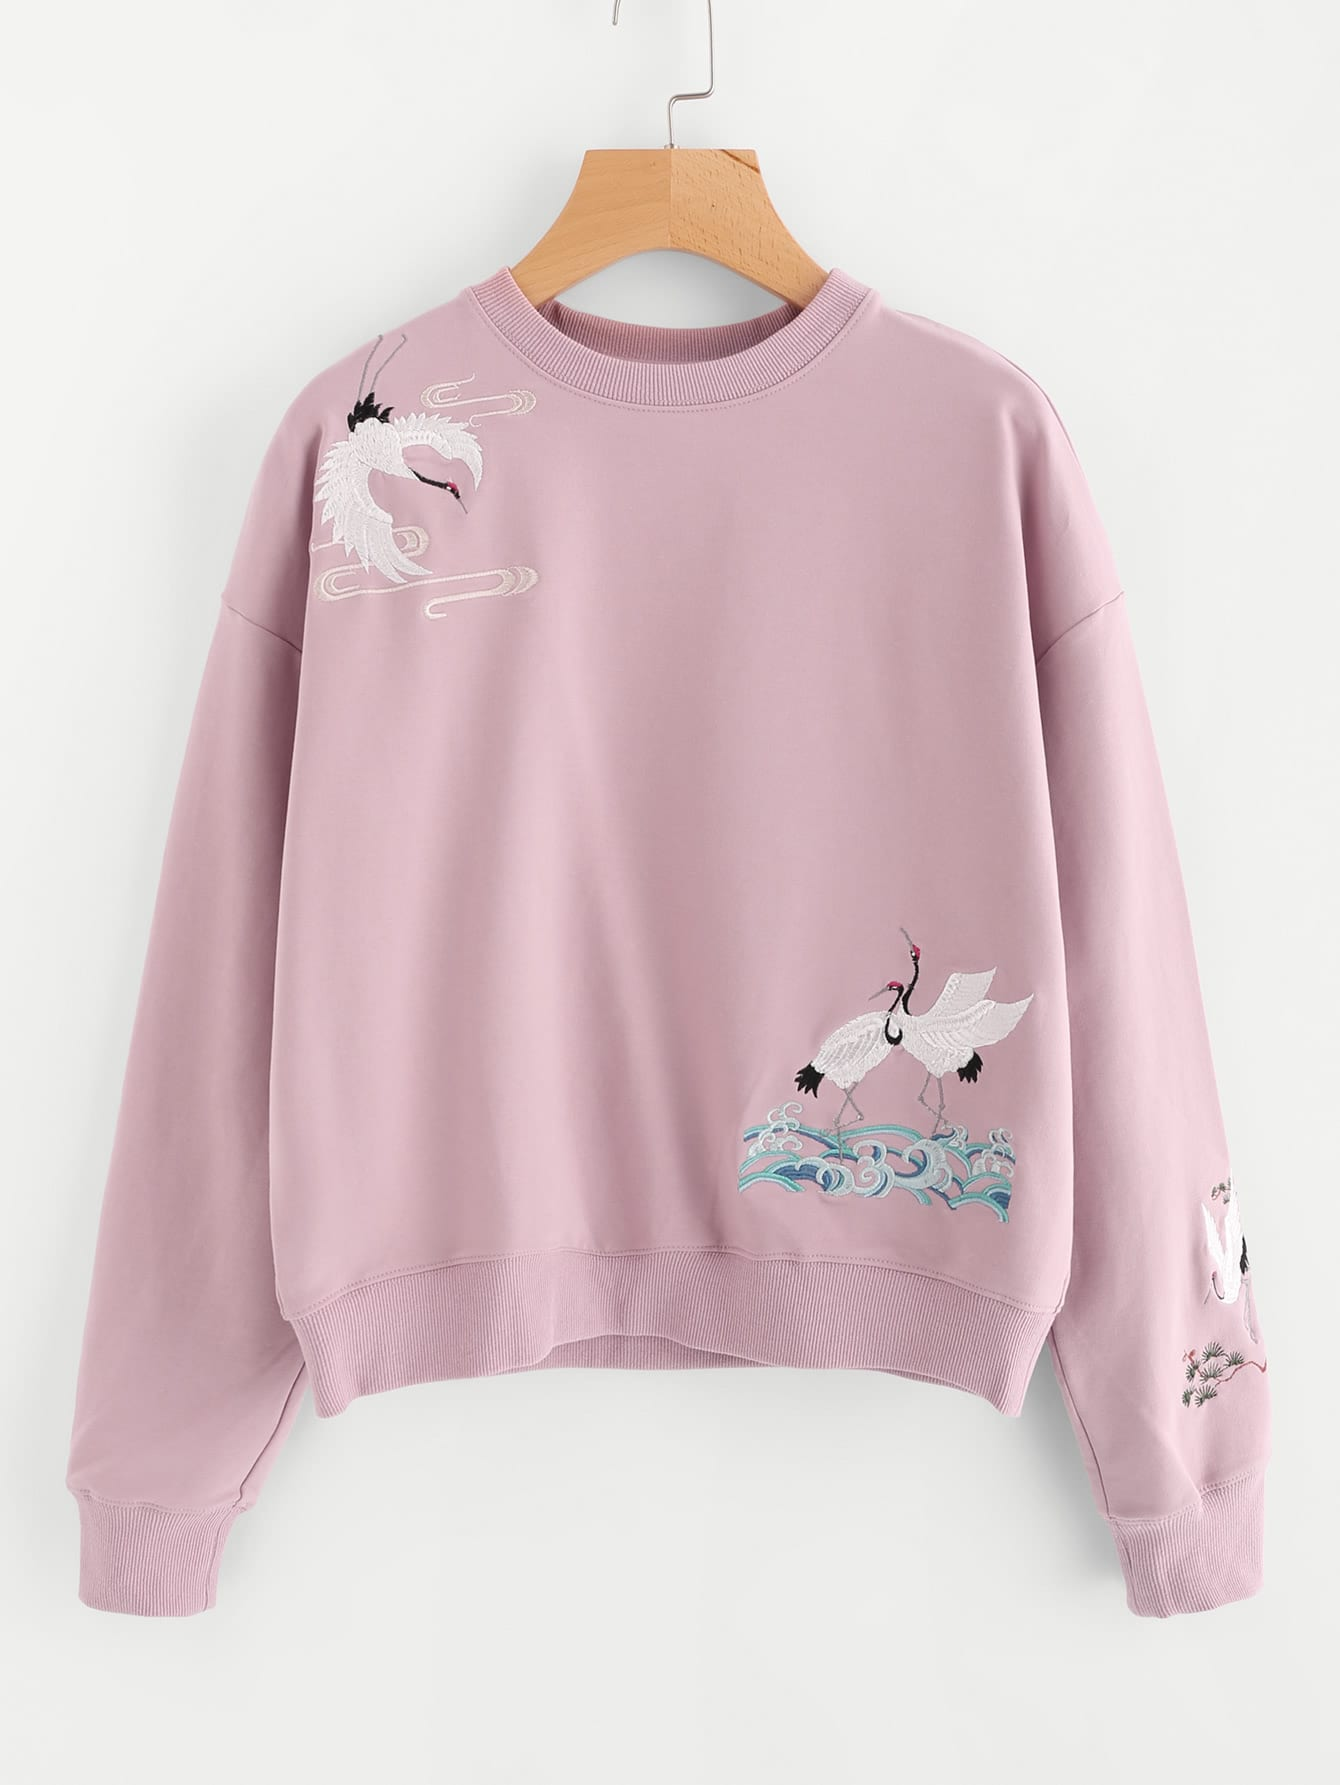 Drop Shoulder Crane Bird Embroidered Sweatshirt two tone drop shoulder sweatshirt